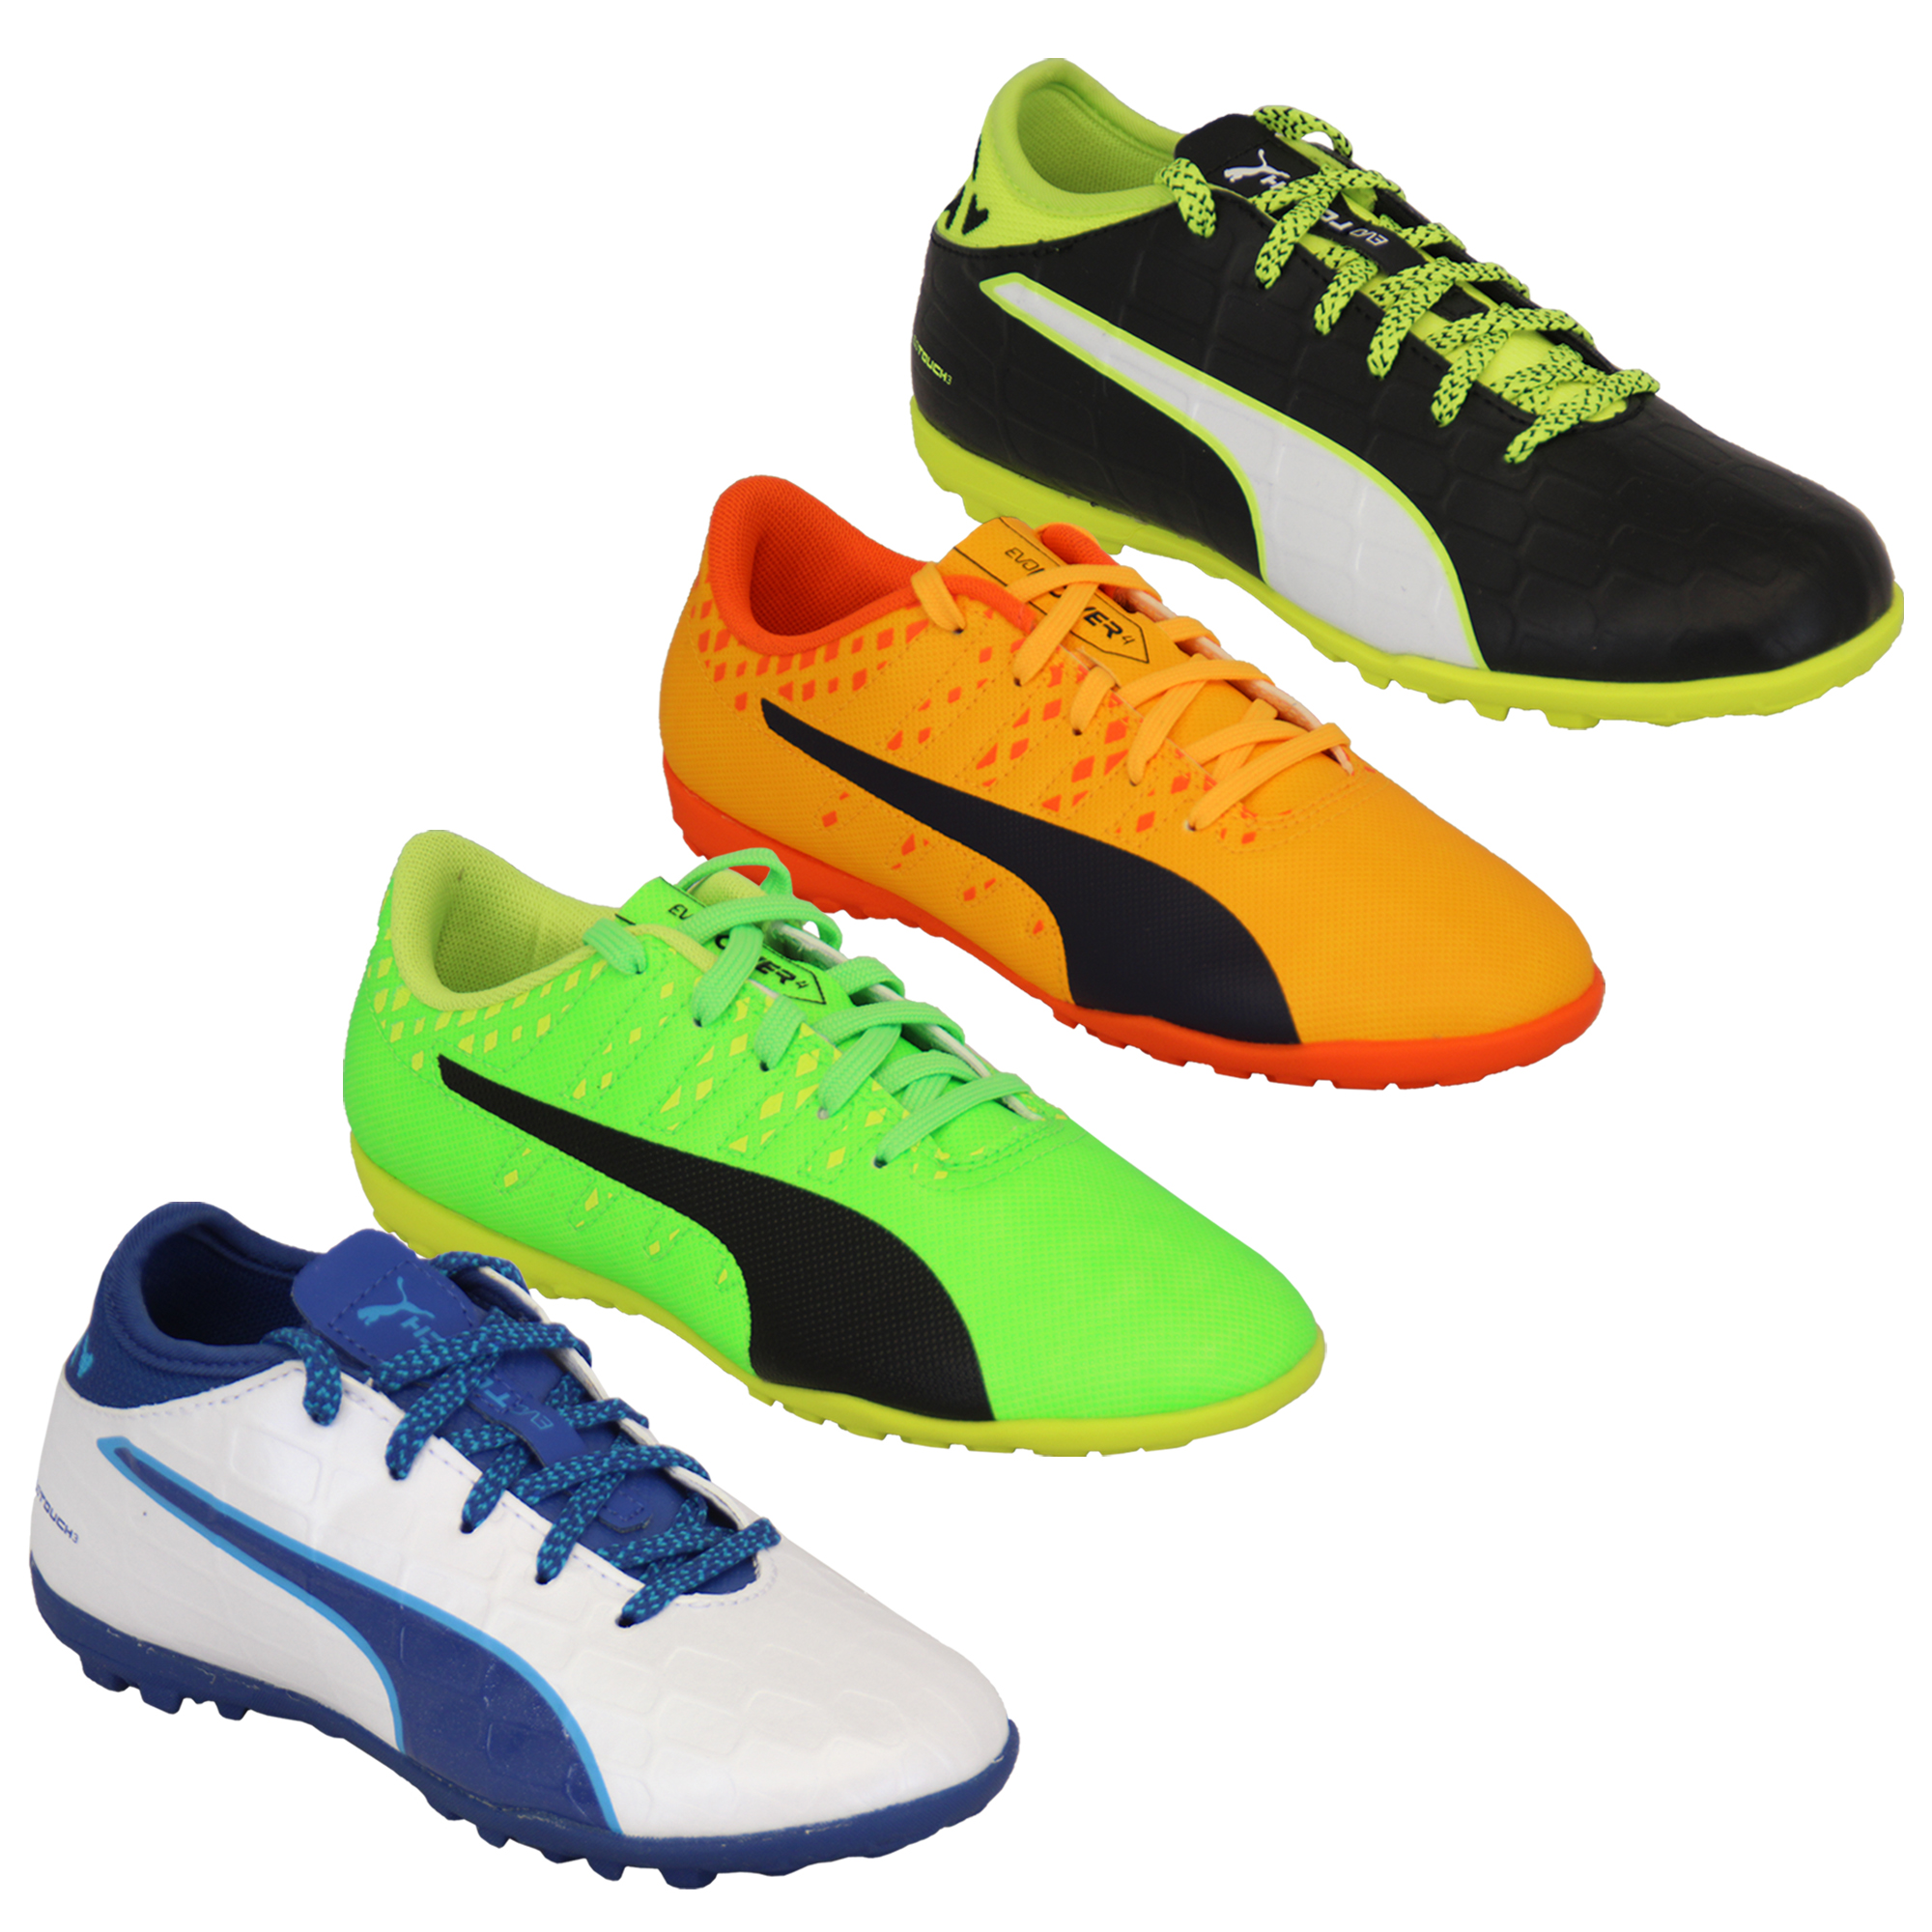 1130a24d999 Boys Football Trainers PUMA Kids Astro Turf Evo Touch Power Boots ...